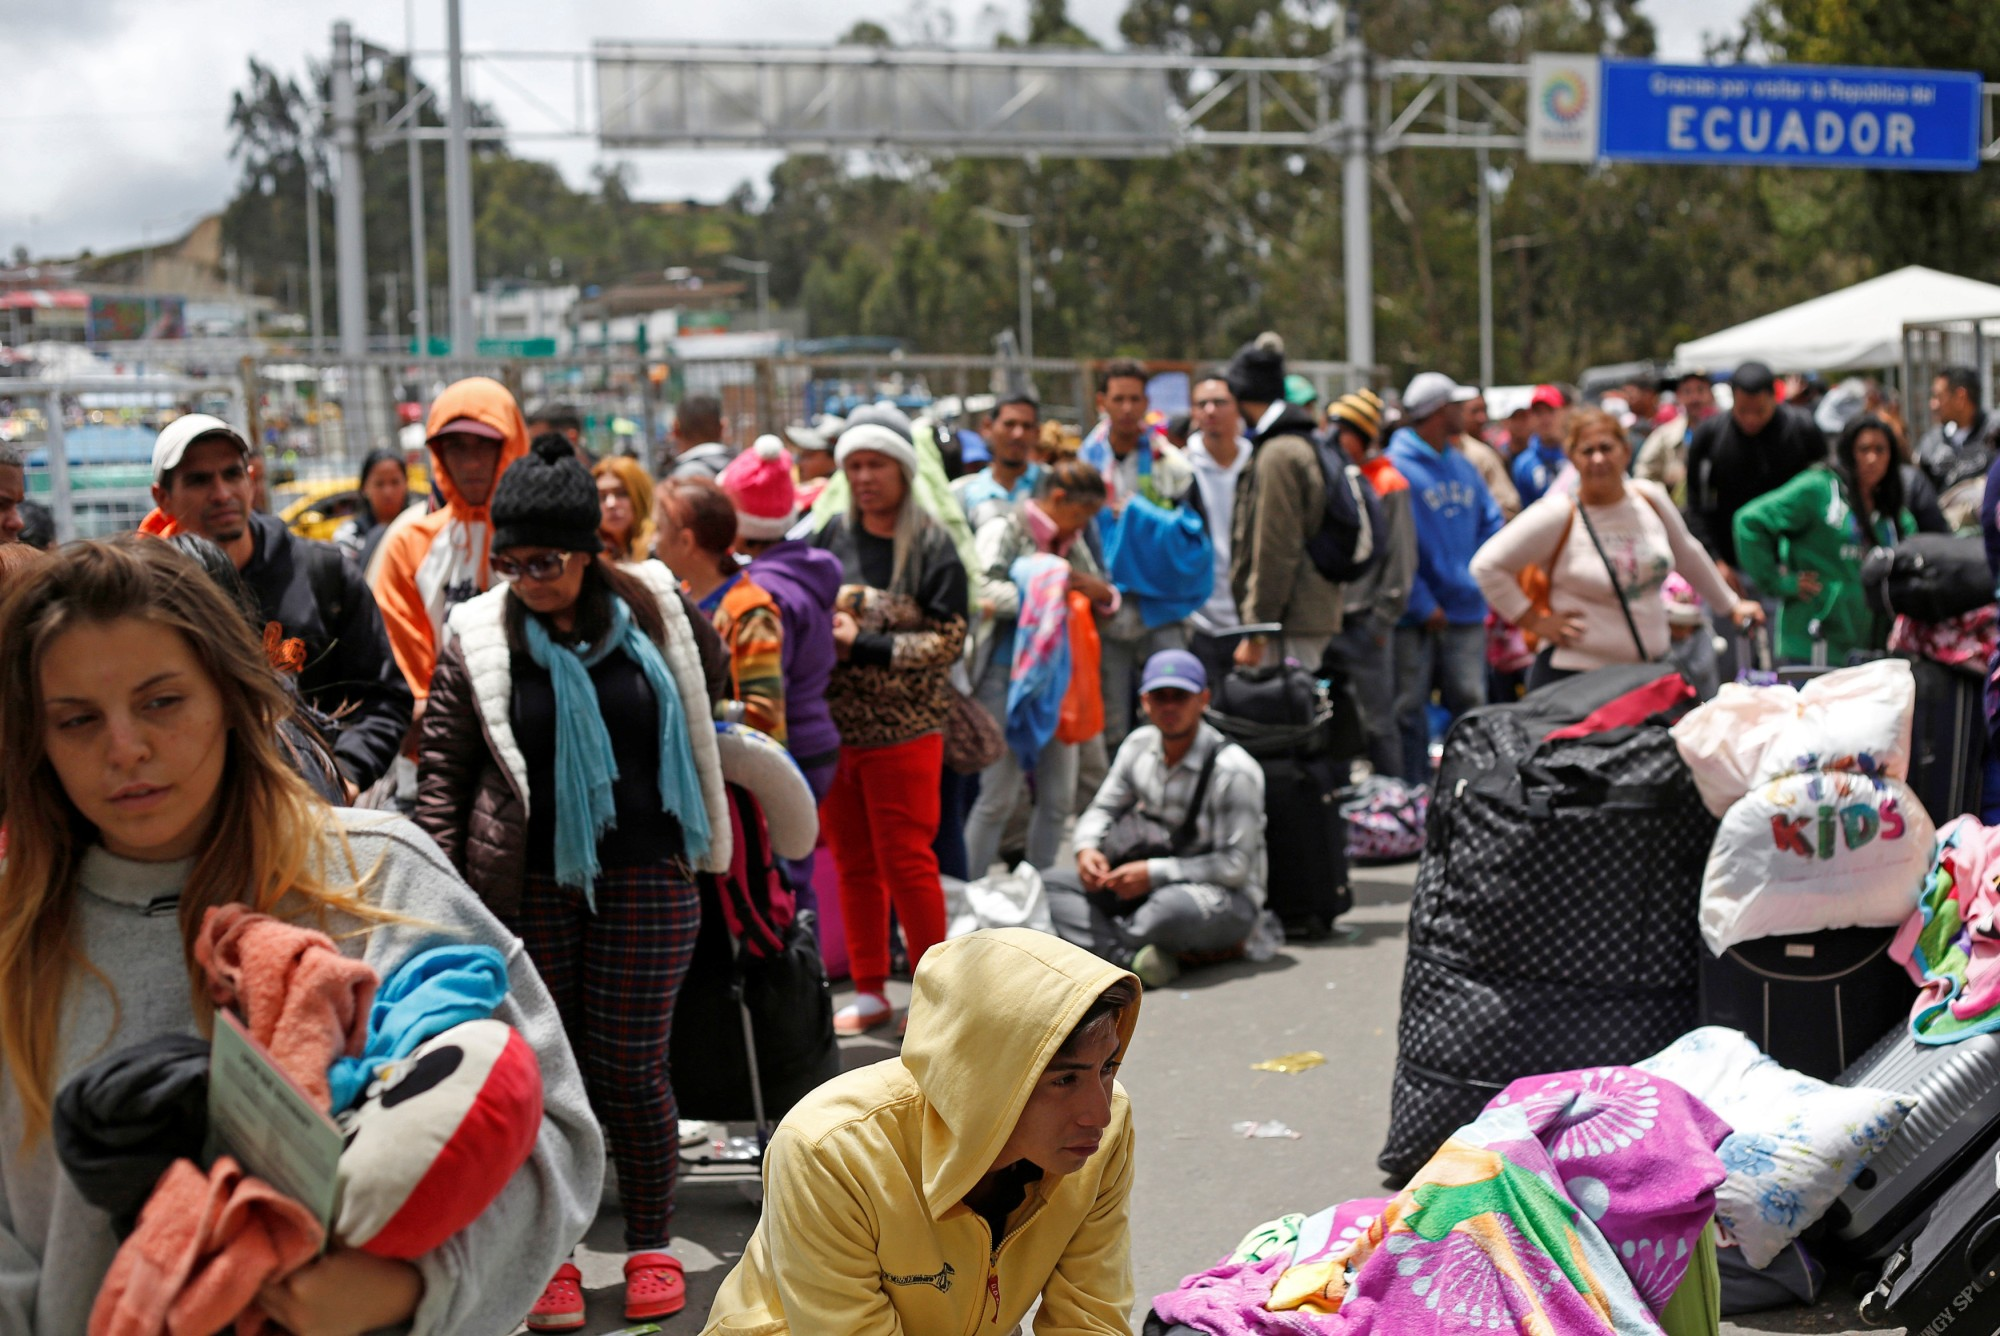 Venezuelan citizens and other migrants wait at the border with Colombia, at the Rumichaca bridge checkpoint, in Ecuador Saturday. Ecuadorean President Lenin Moreno signed a decree requiring Venezuelan citizens, who until now could cross the border with a passport or other form of identification, to have a visa to enter the country. | REUTERS